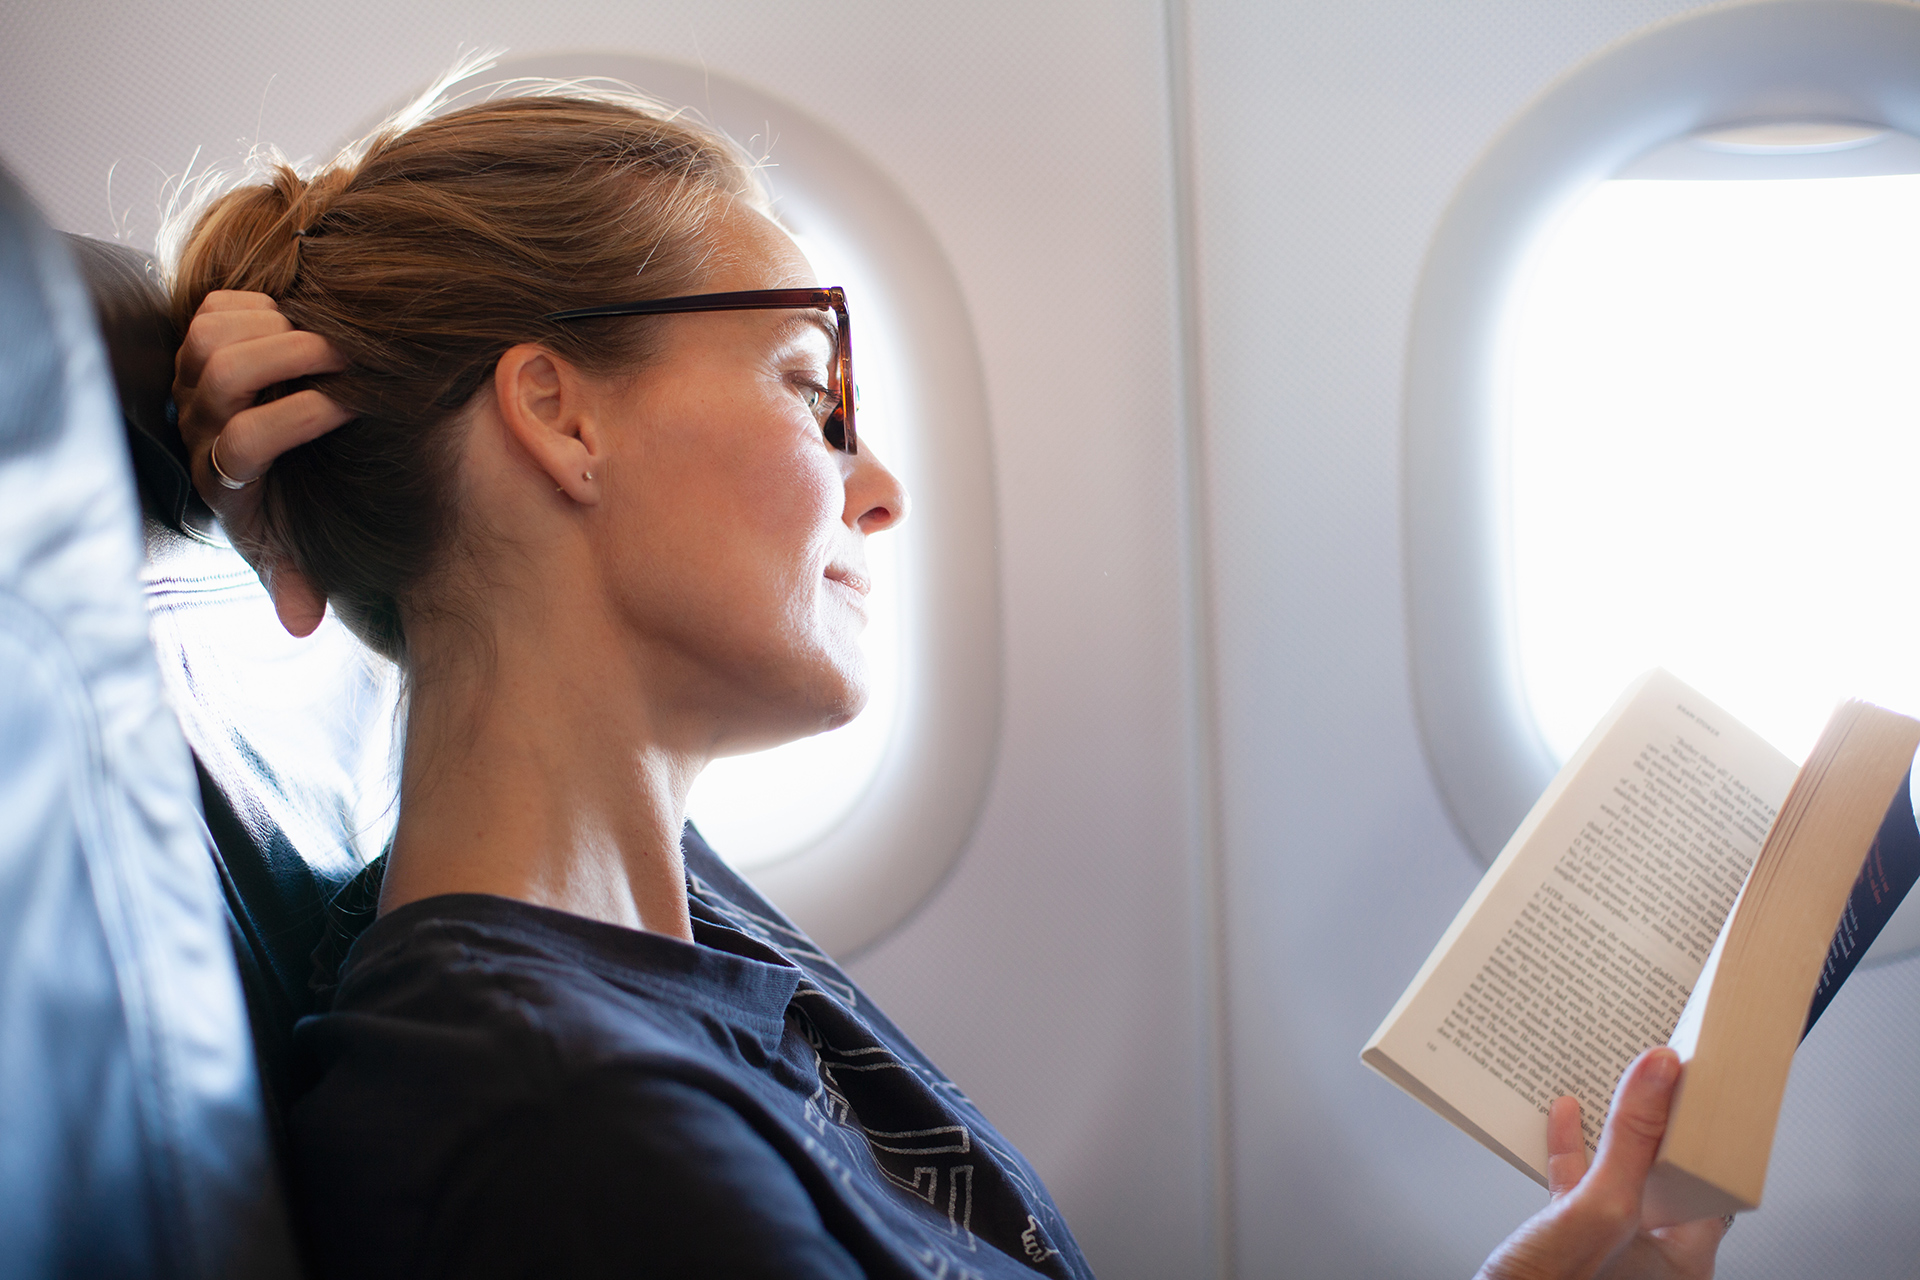 women in airplane seat reading book